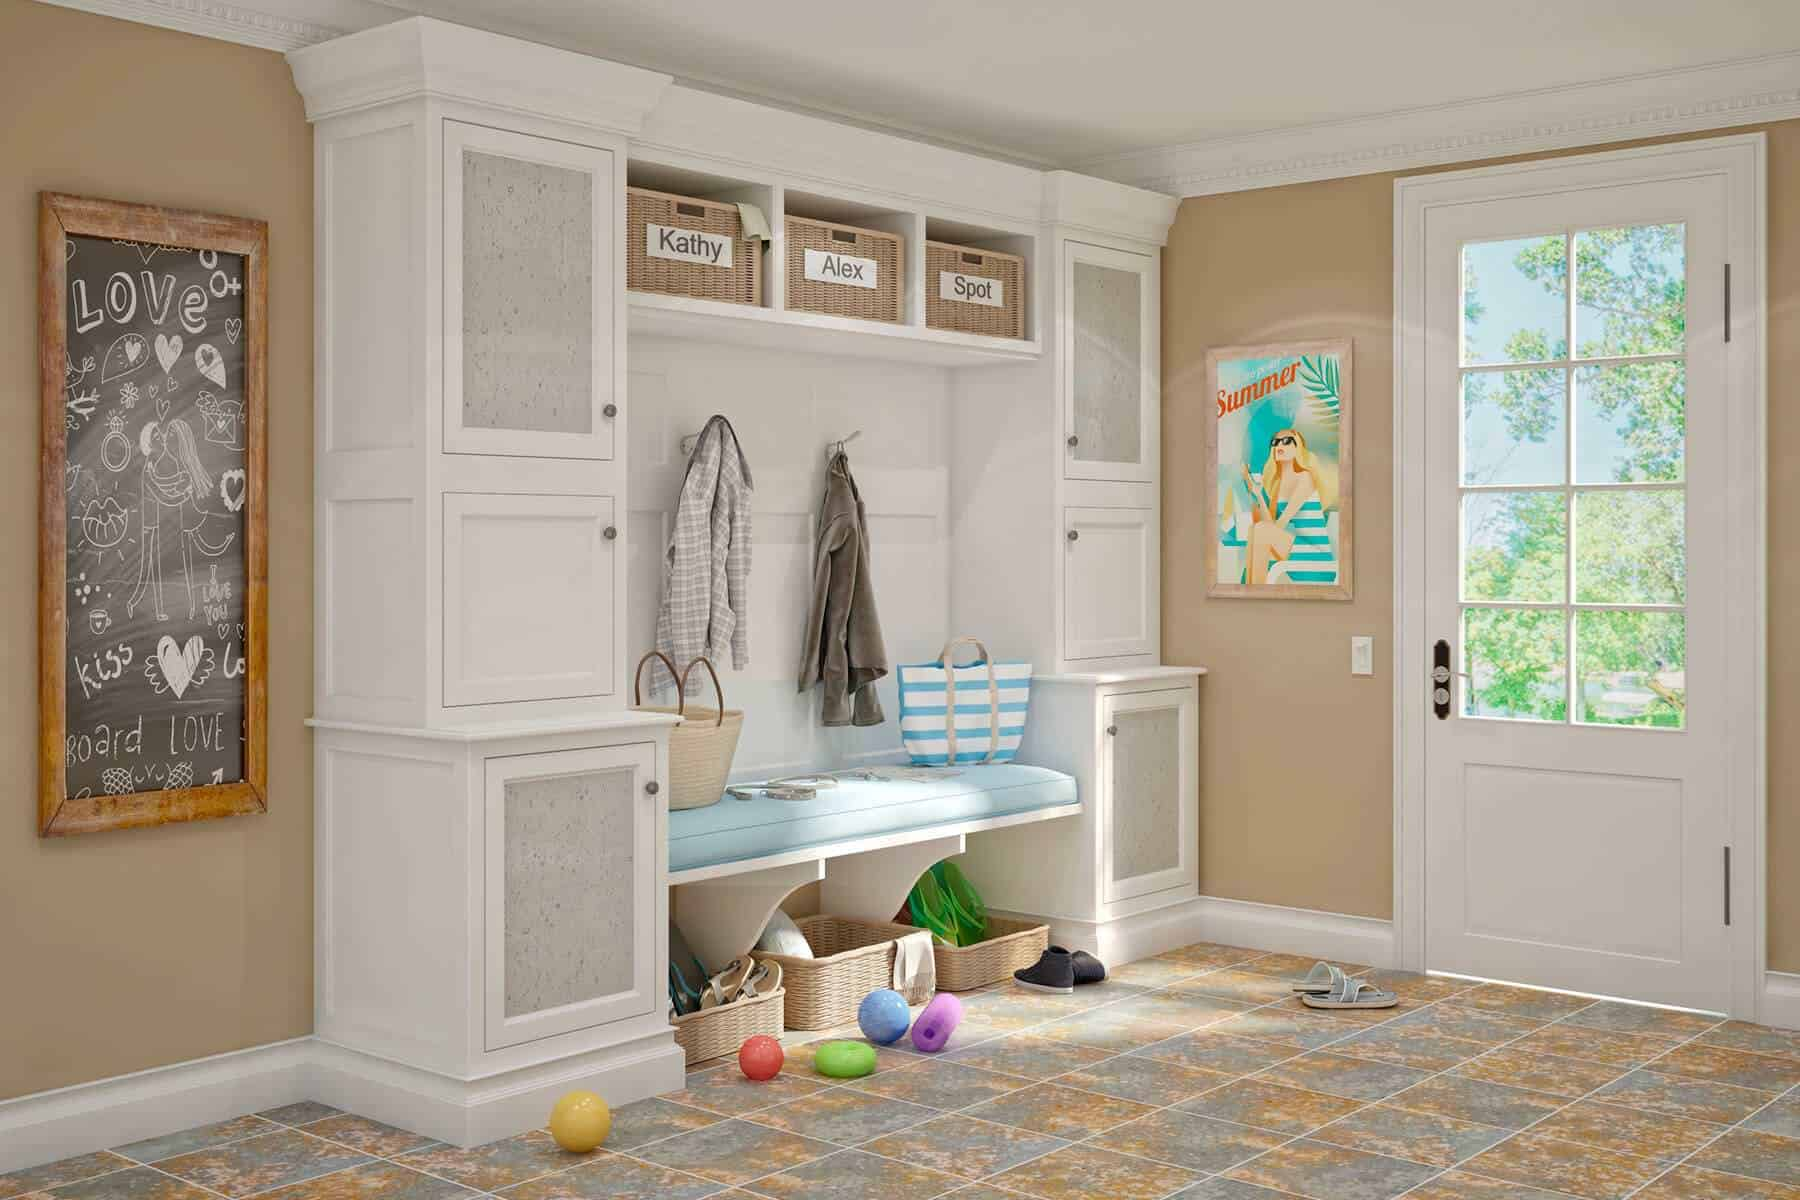 This is a very cute mudroom with a storage compartment that has separate spaces assigned for family members and also has a door, allowing for a few glimpses of the outdoor nature.